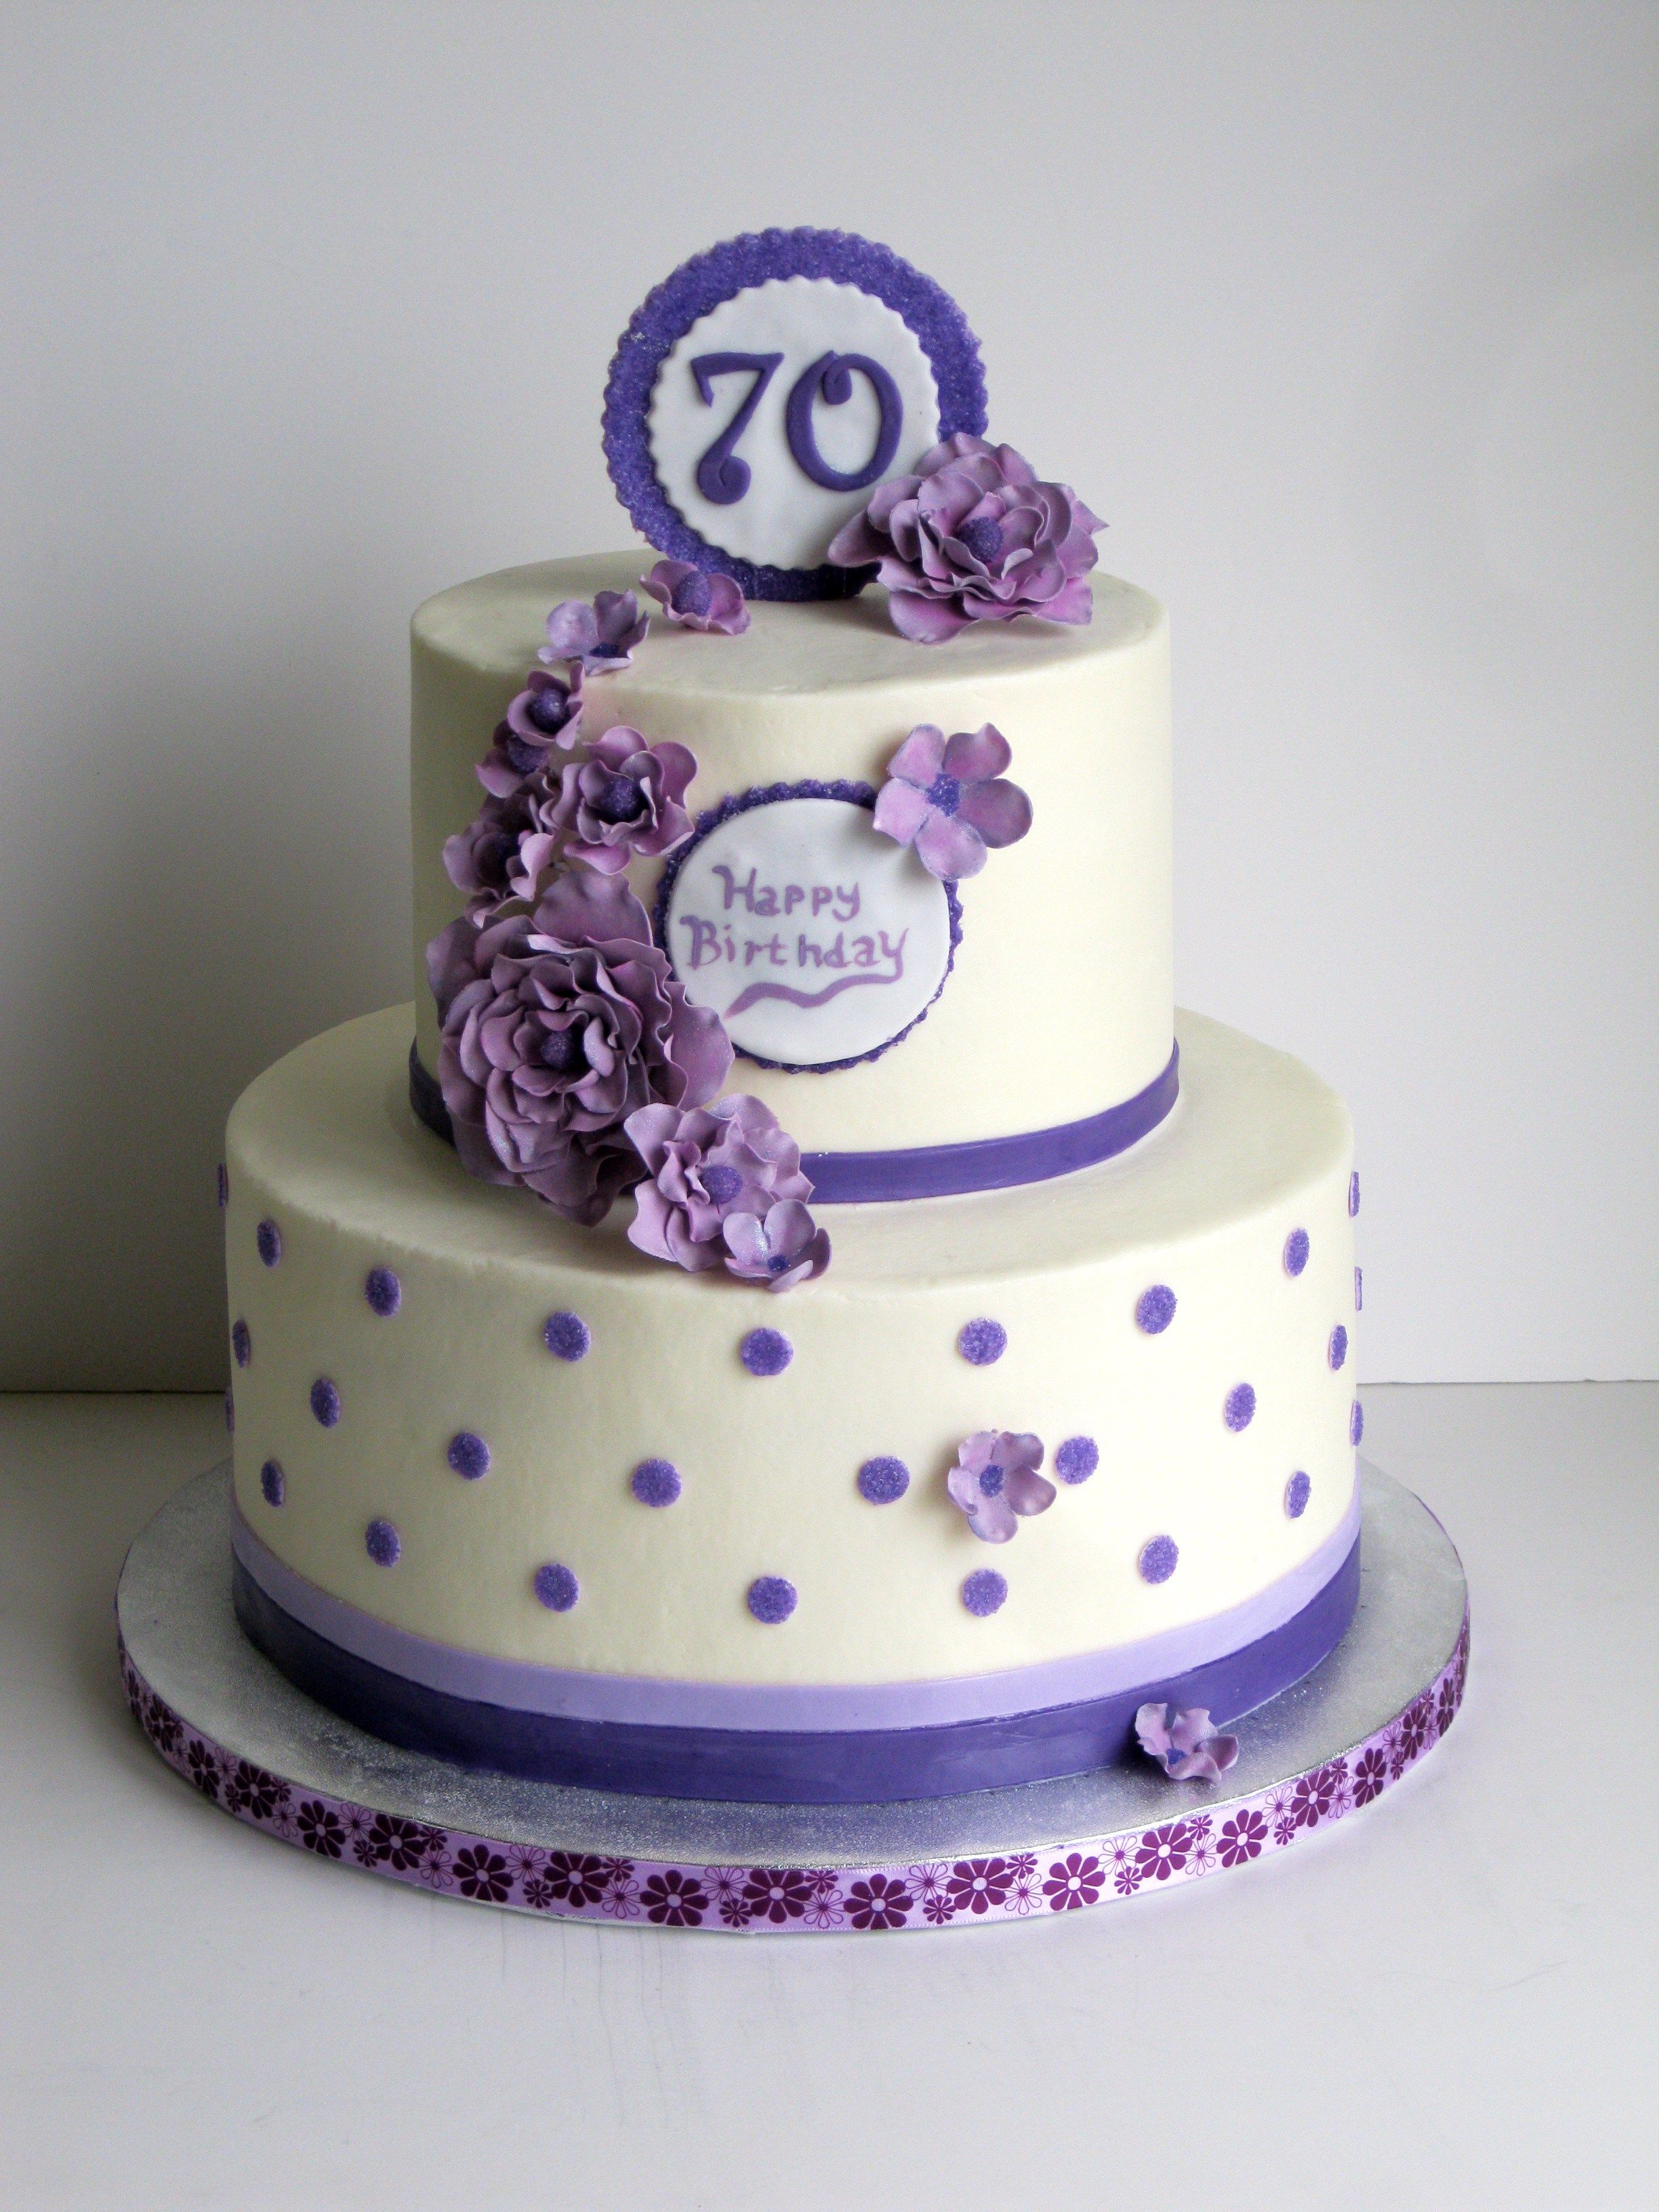 Purple and white birthday cake covered in buttercream with